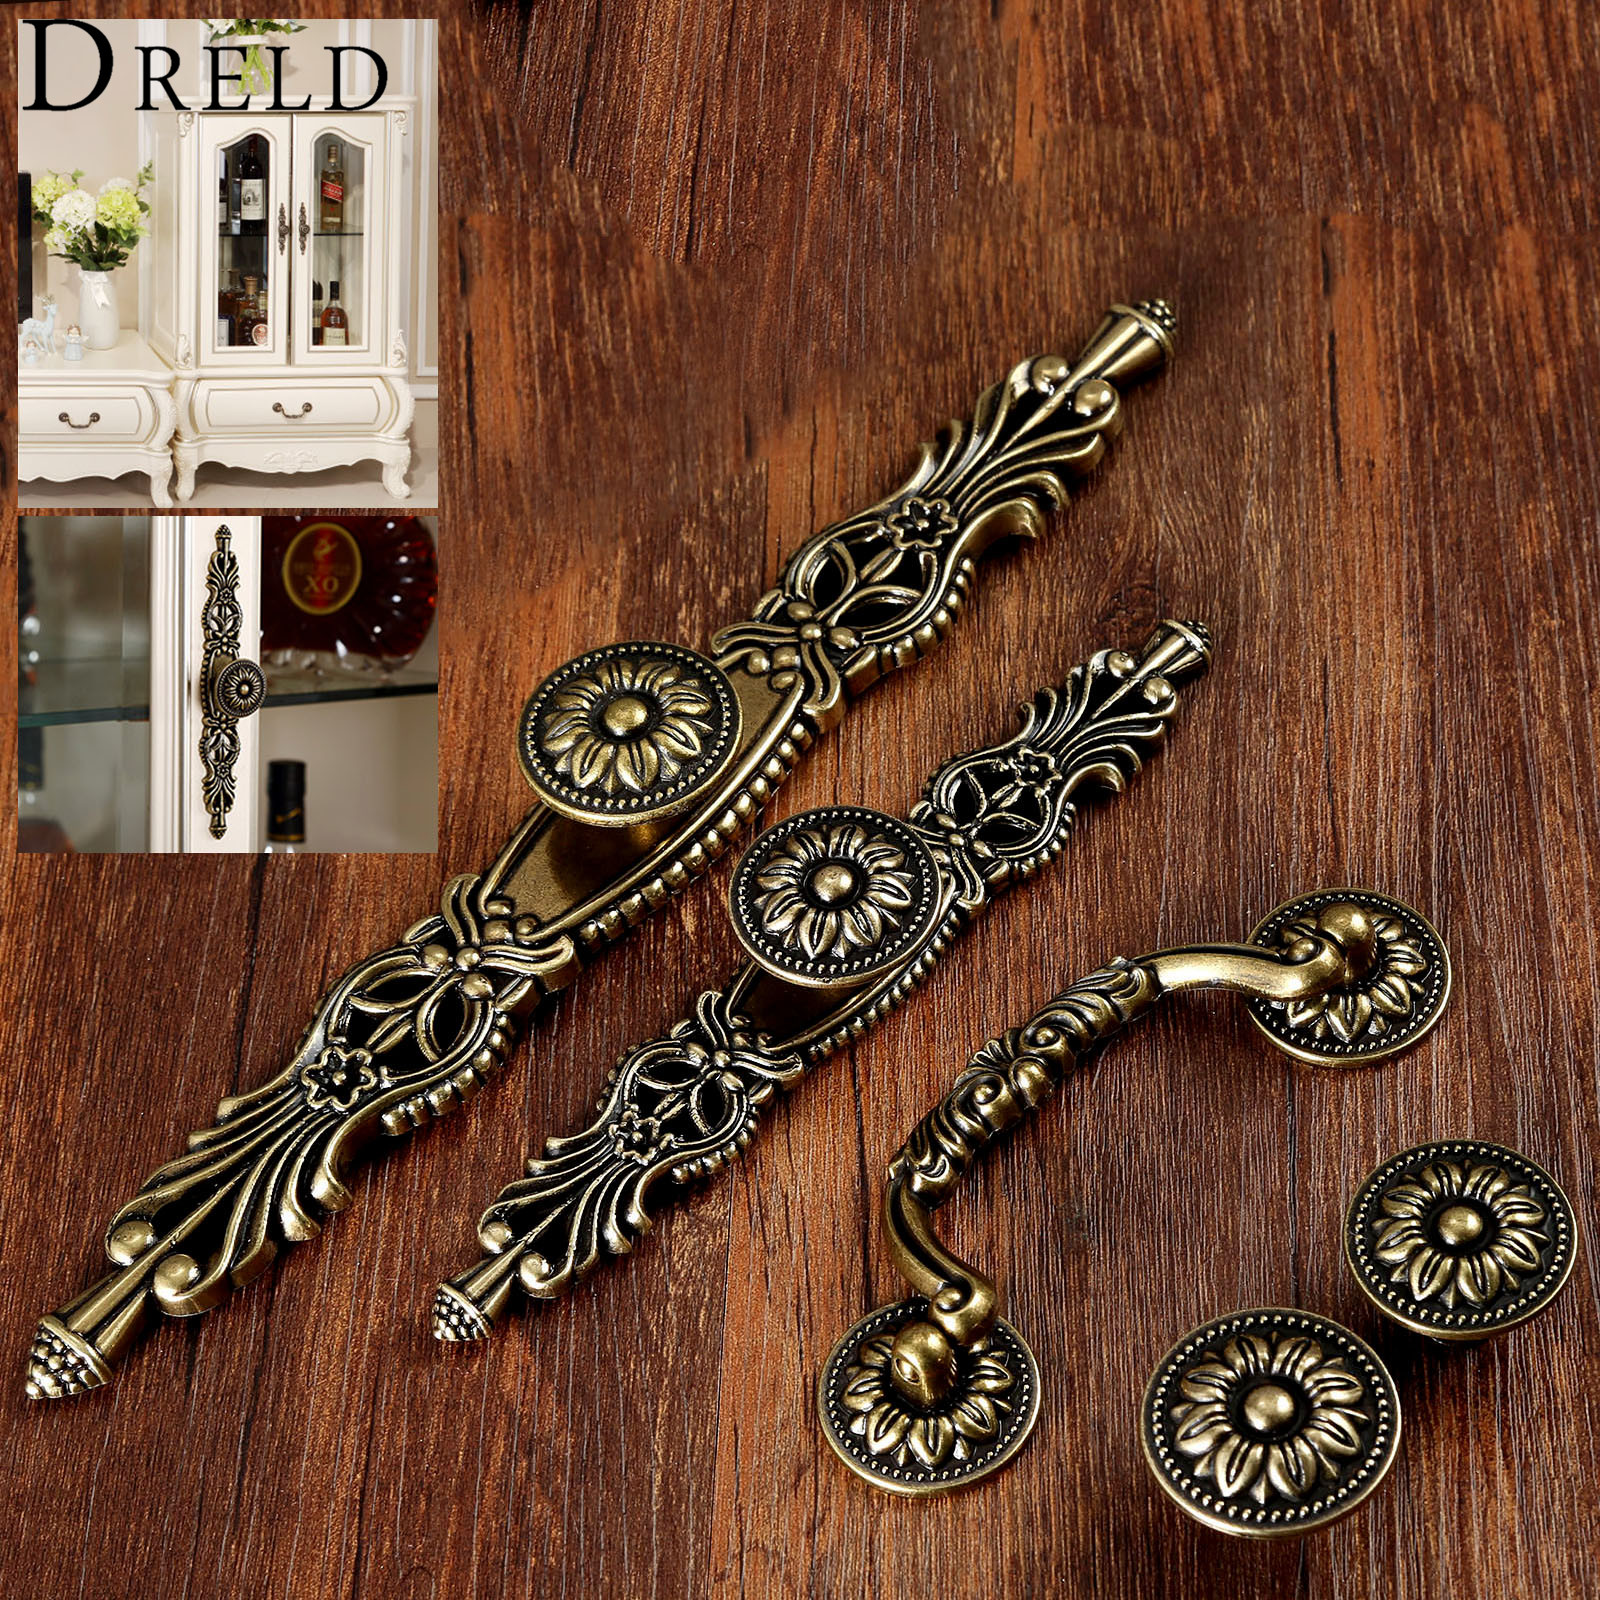 DRELD Antique Furniture Handle Vintage Cabinet Knobs and Handles Wardrobe Cupboard Drawer Kitchen Pull Knob Furniture Hareware dreld 96 128 160mm furniture handle modern cabinet knobs and handles door cupboard drawer kitchen pull handle furniture hardware